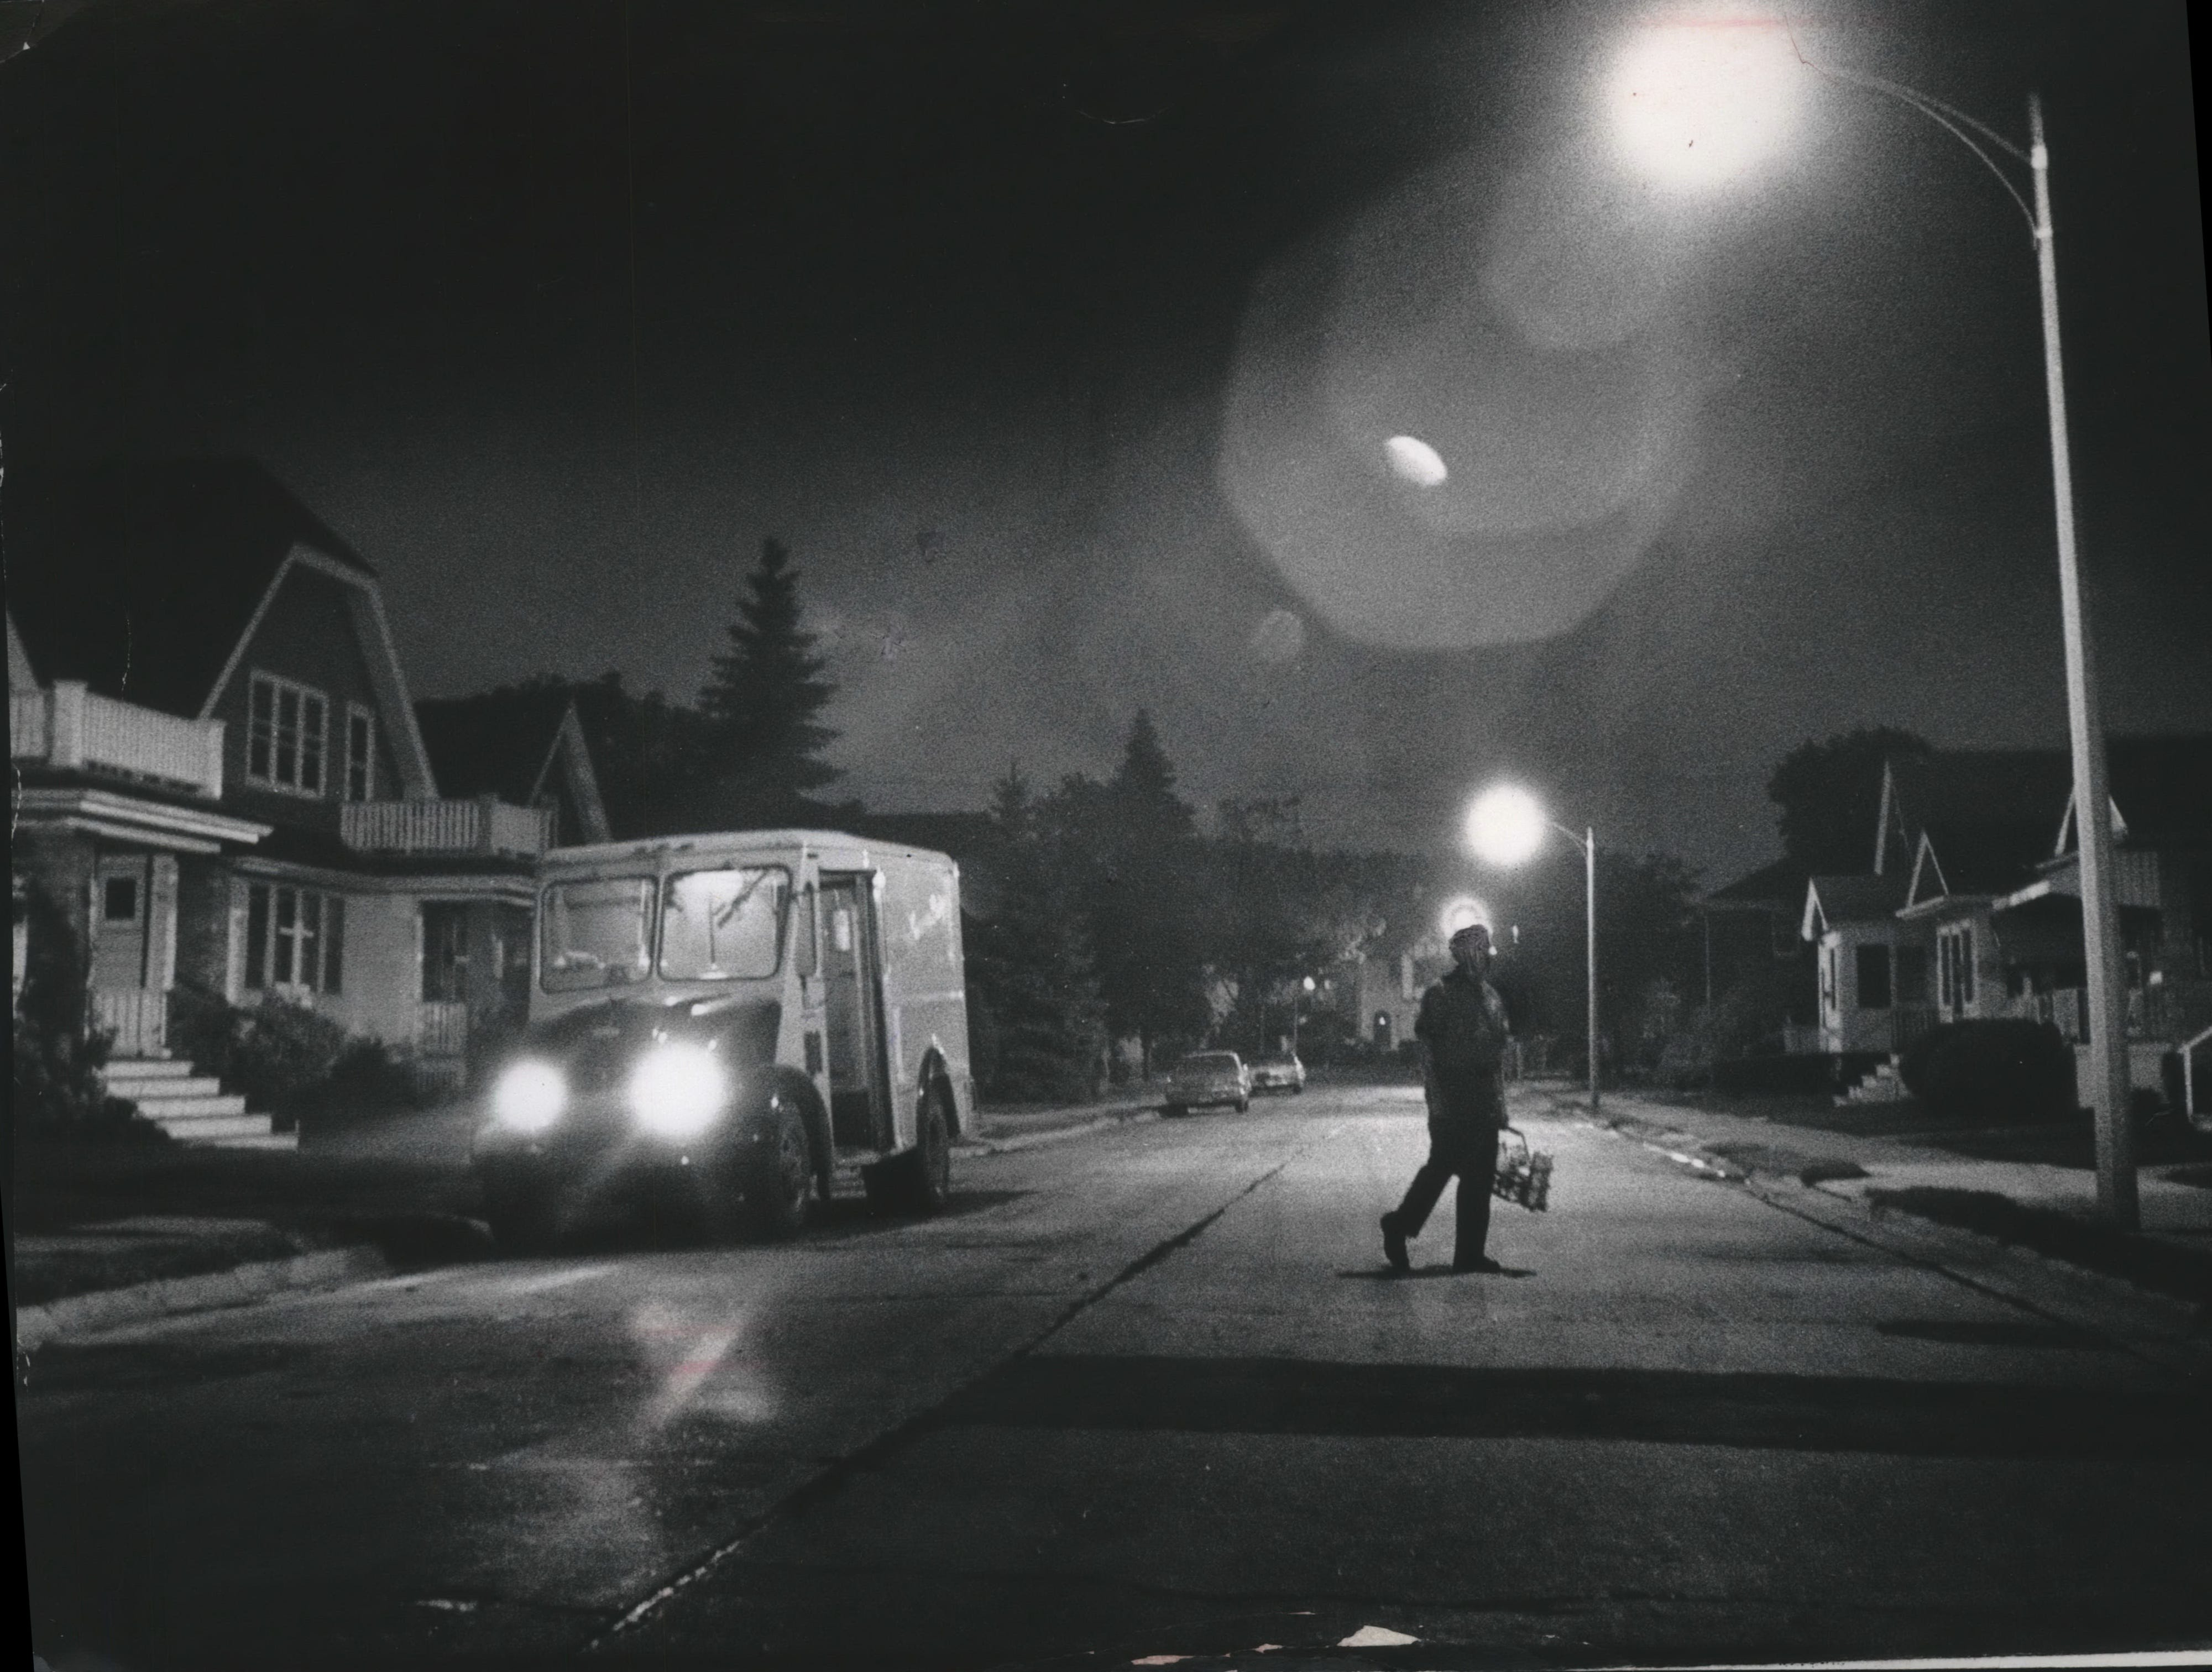 1973: Though home delivery was on the decline, milkman Jack Reed was busy delivering dairy products to customers on the Golden Guernsey route, which took him along streets and alleys on Milwaukee's northwest side.